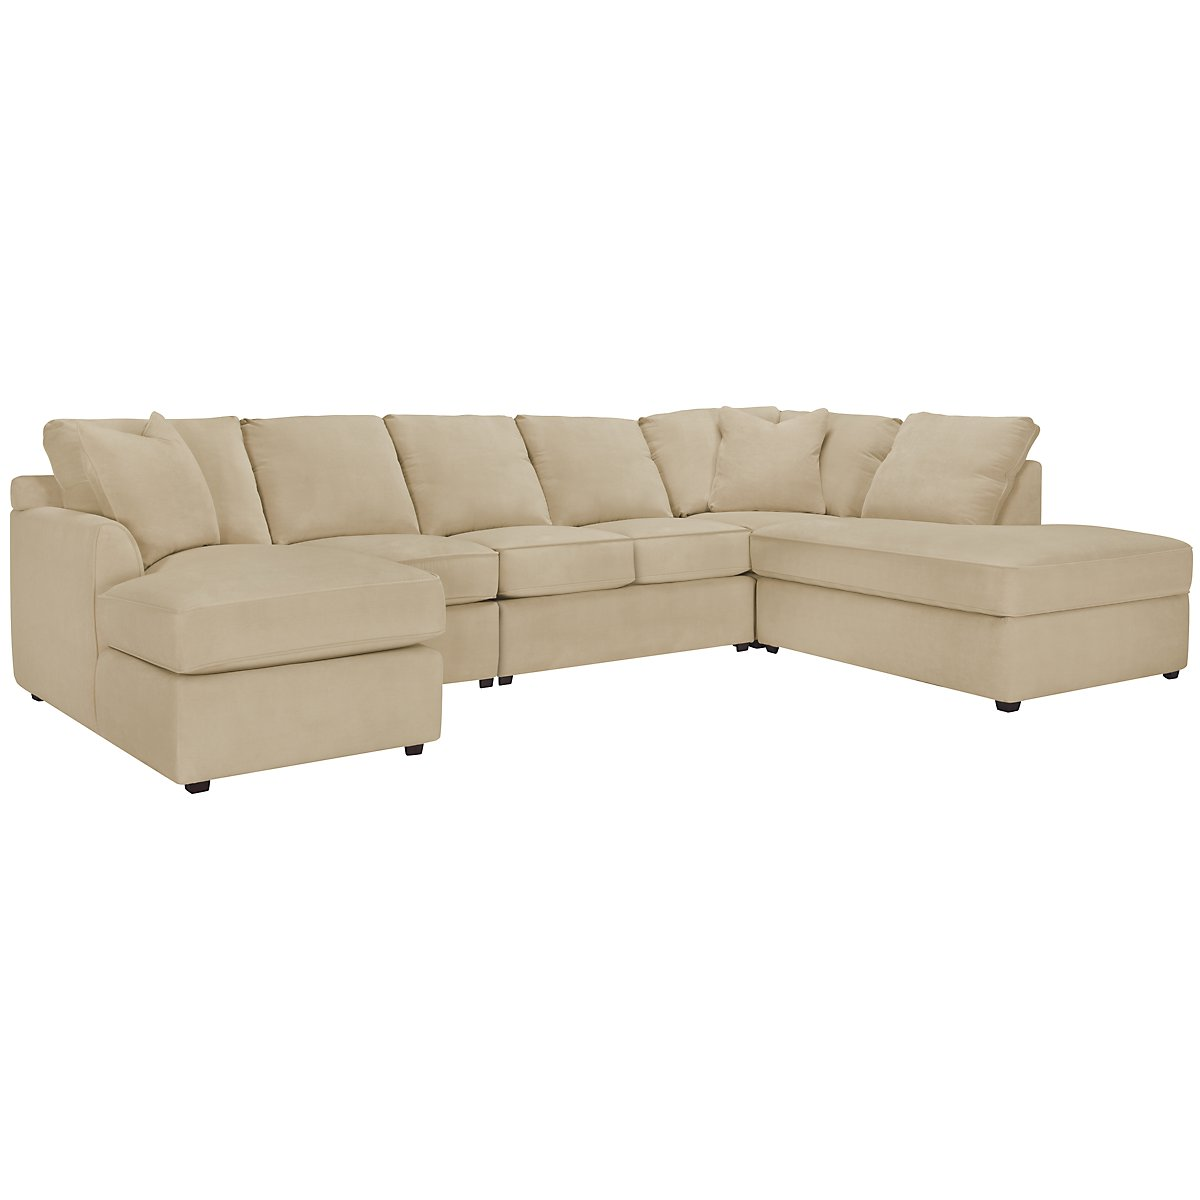 Express3 Lt Beige Microfiber Large Right Bumper Sectional